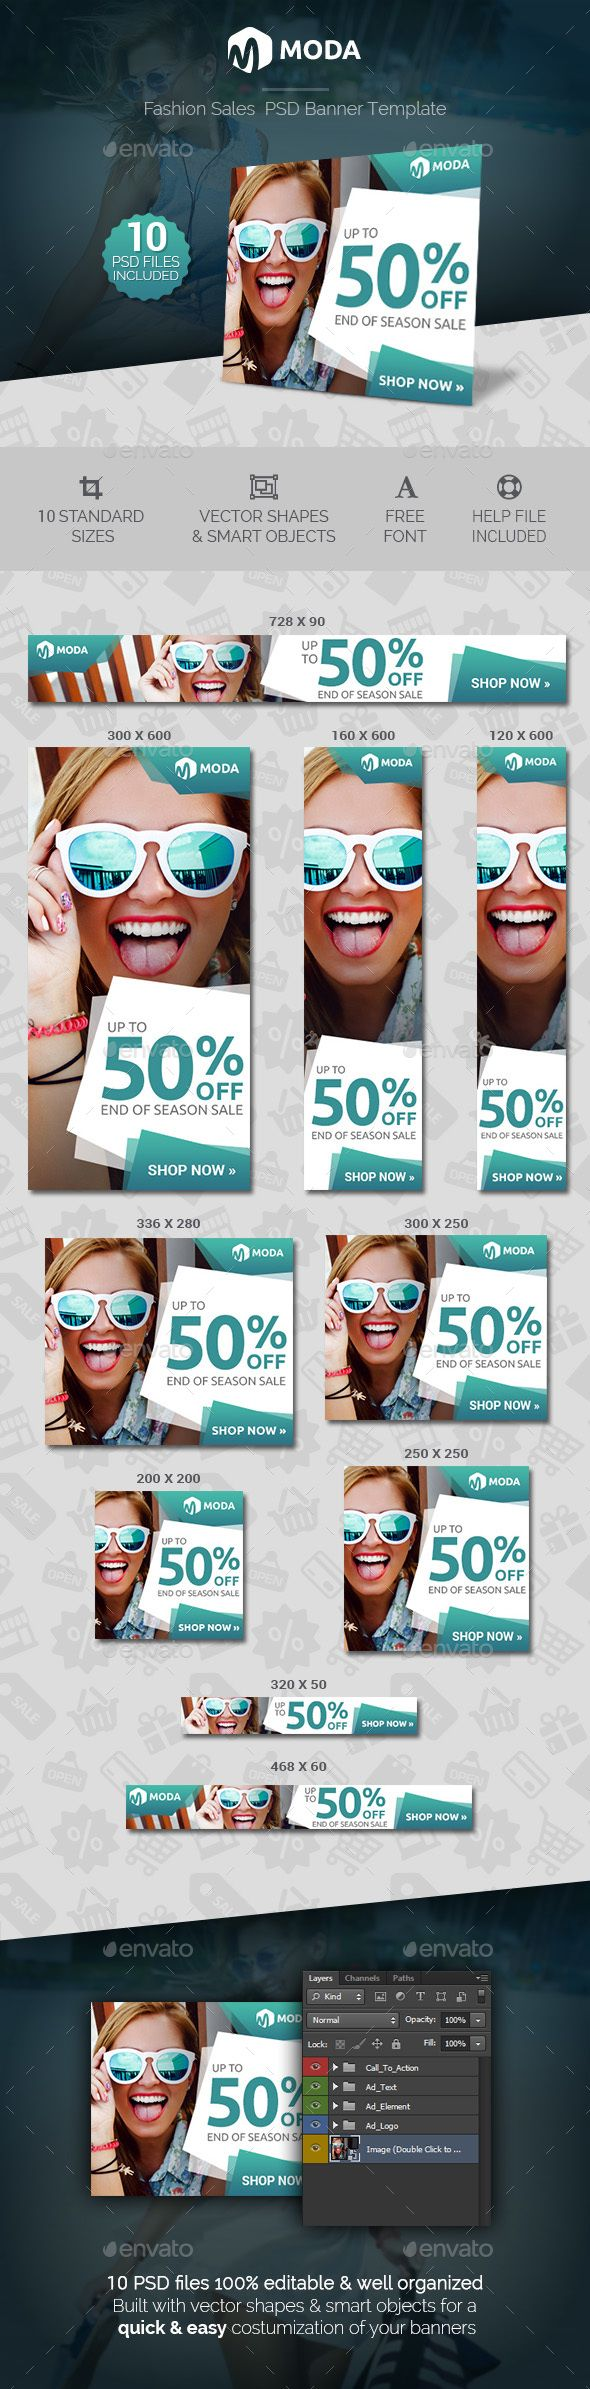 Moda - Fashion Sales Banner Template PSD #ads